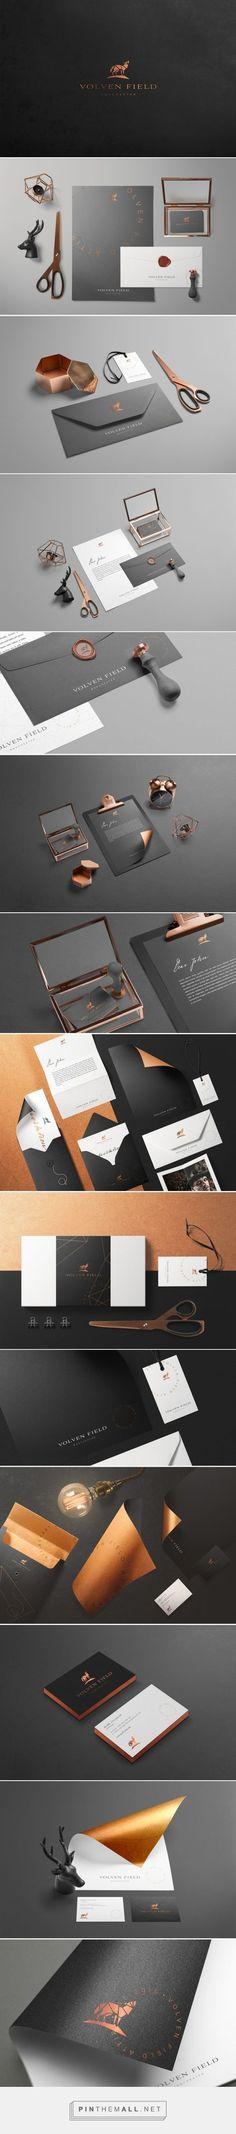 Volven Field Manchester Fashion Designer Branding by